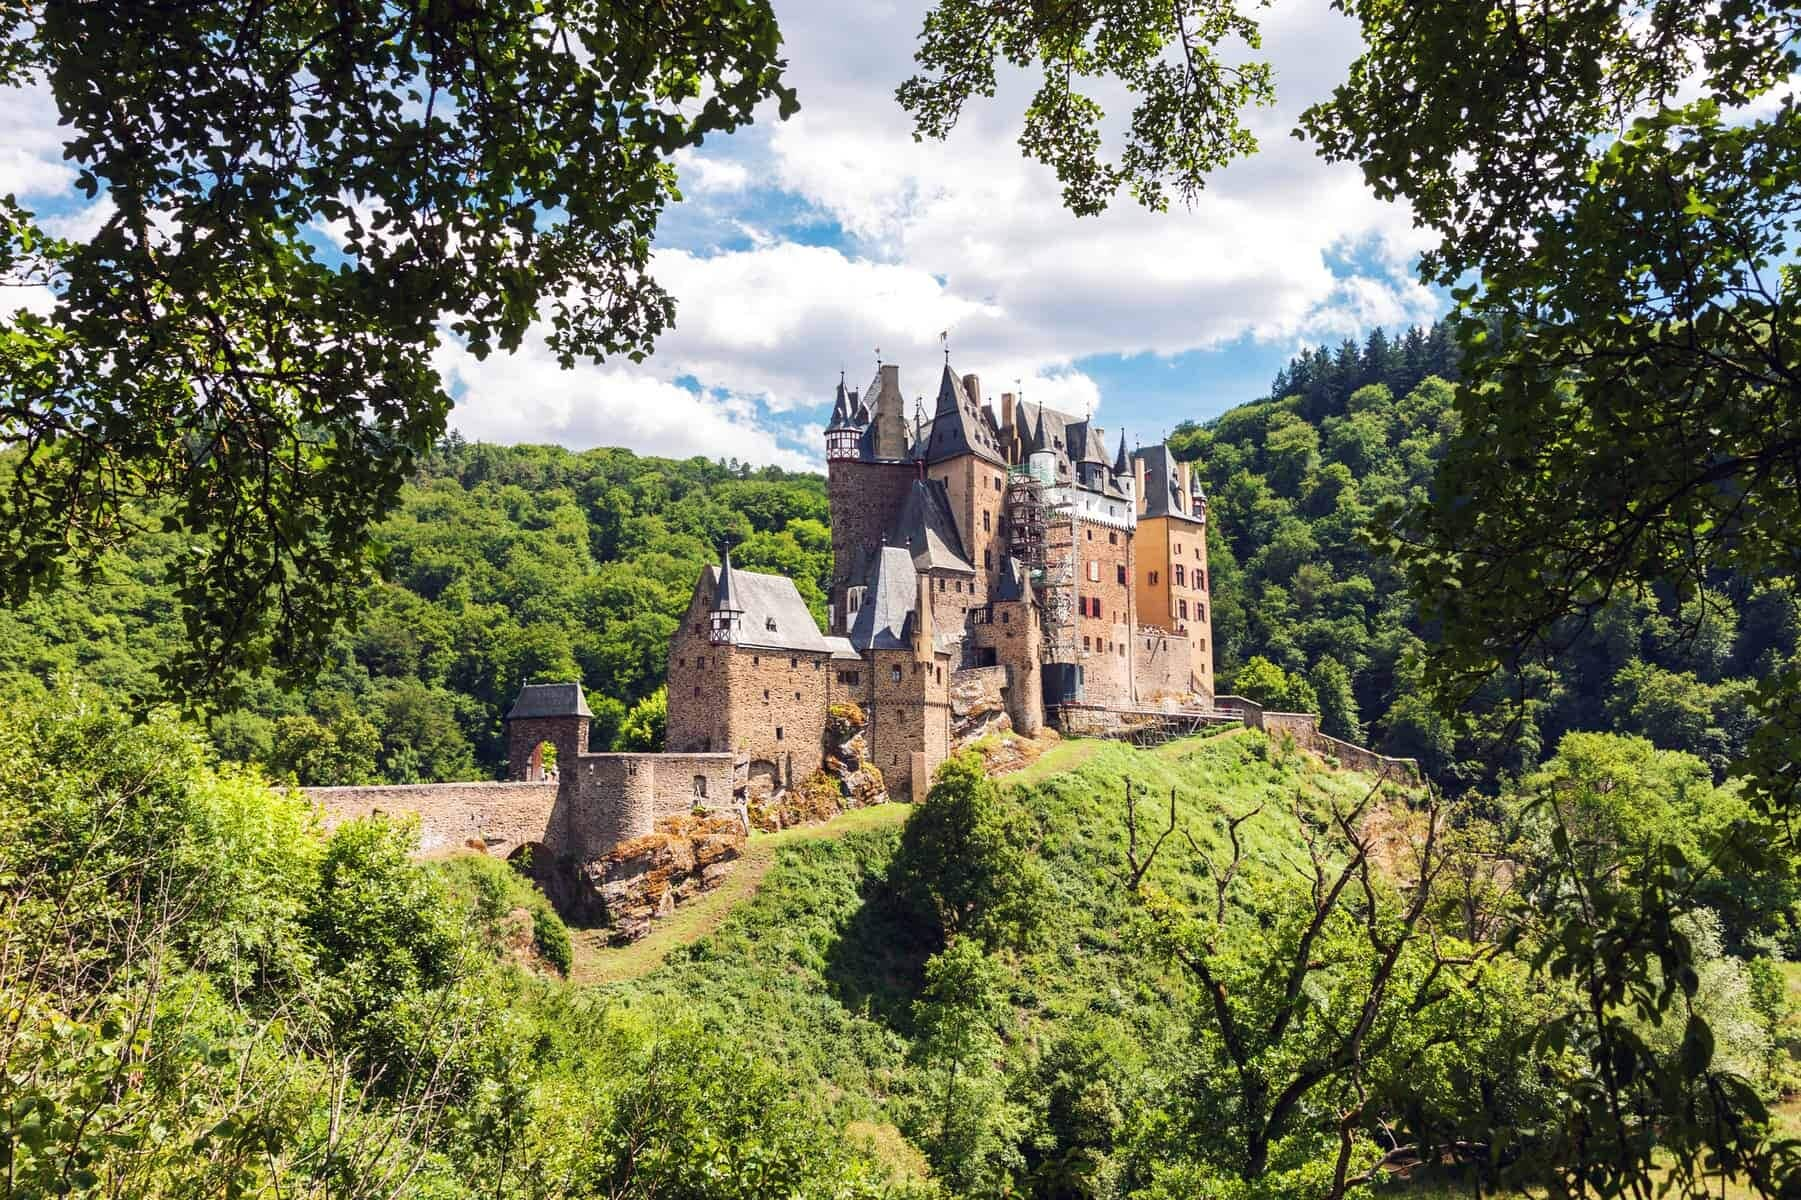 Medieval Eltz Castle nestled in the hills above the Moselle River between Koblenz and Trier, Germany